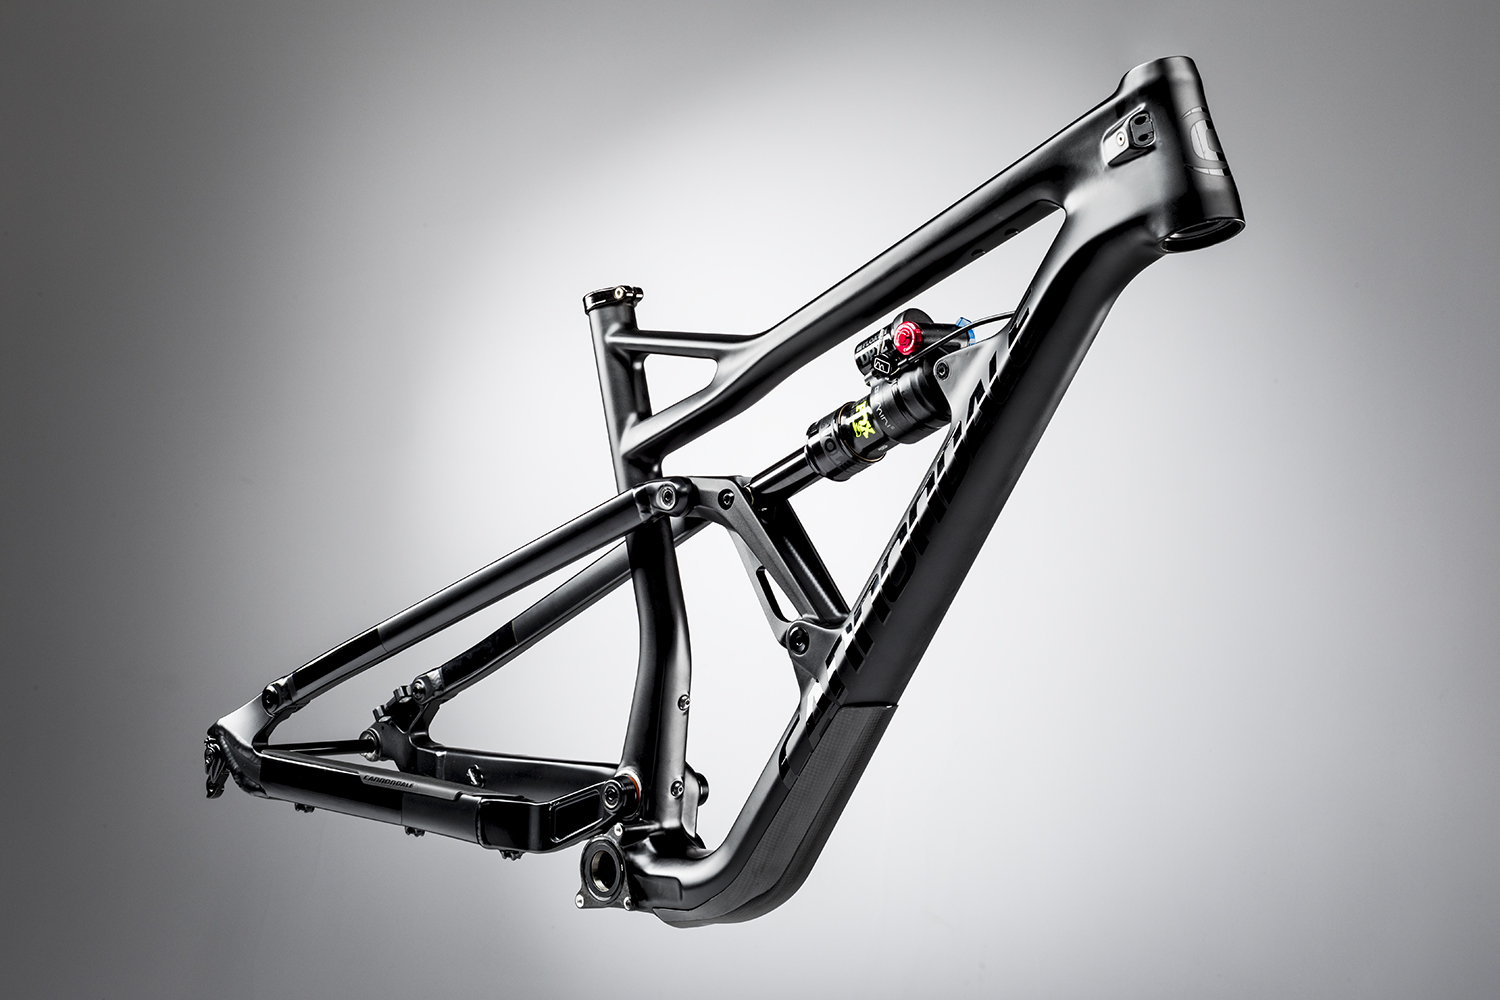 330ff76c11e Cannondale's Ai offset drivetrain (like it or not) is all over the Jekyll  29er, including ISCG 05 tabs, modular internal cable routing, PF30 bottom  bracket, ...